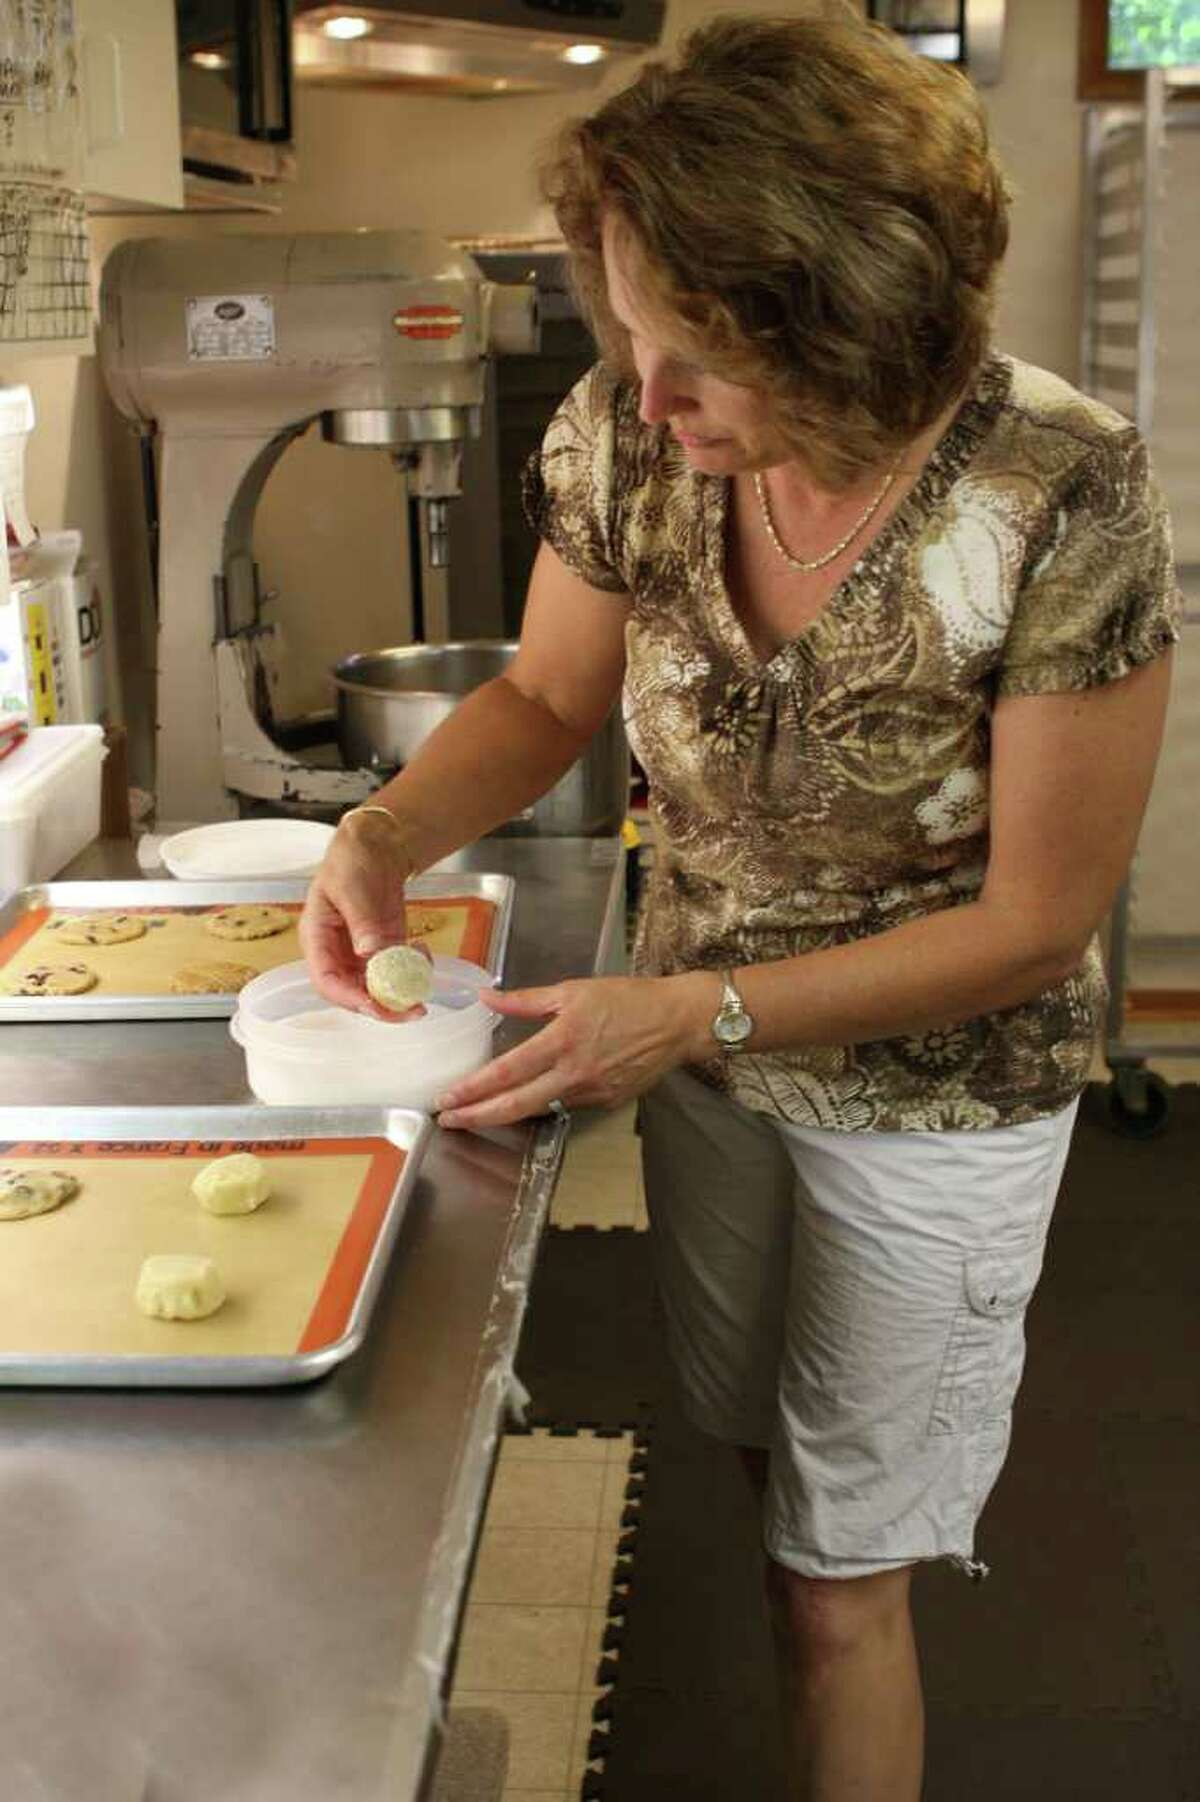 Emily Damiano runs Saratoga Cookie Co. from her Malta home. (Krishna Hill / life@home)